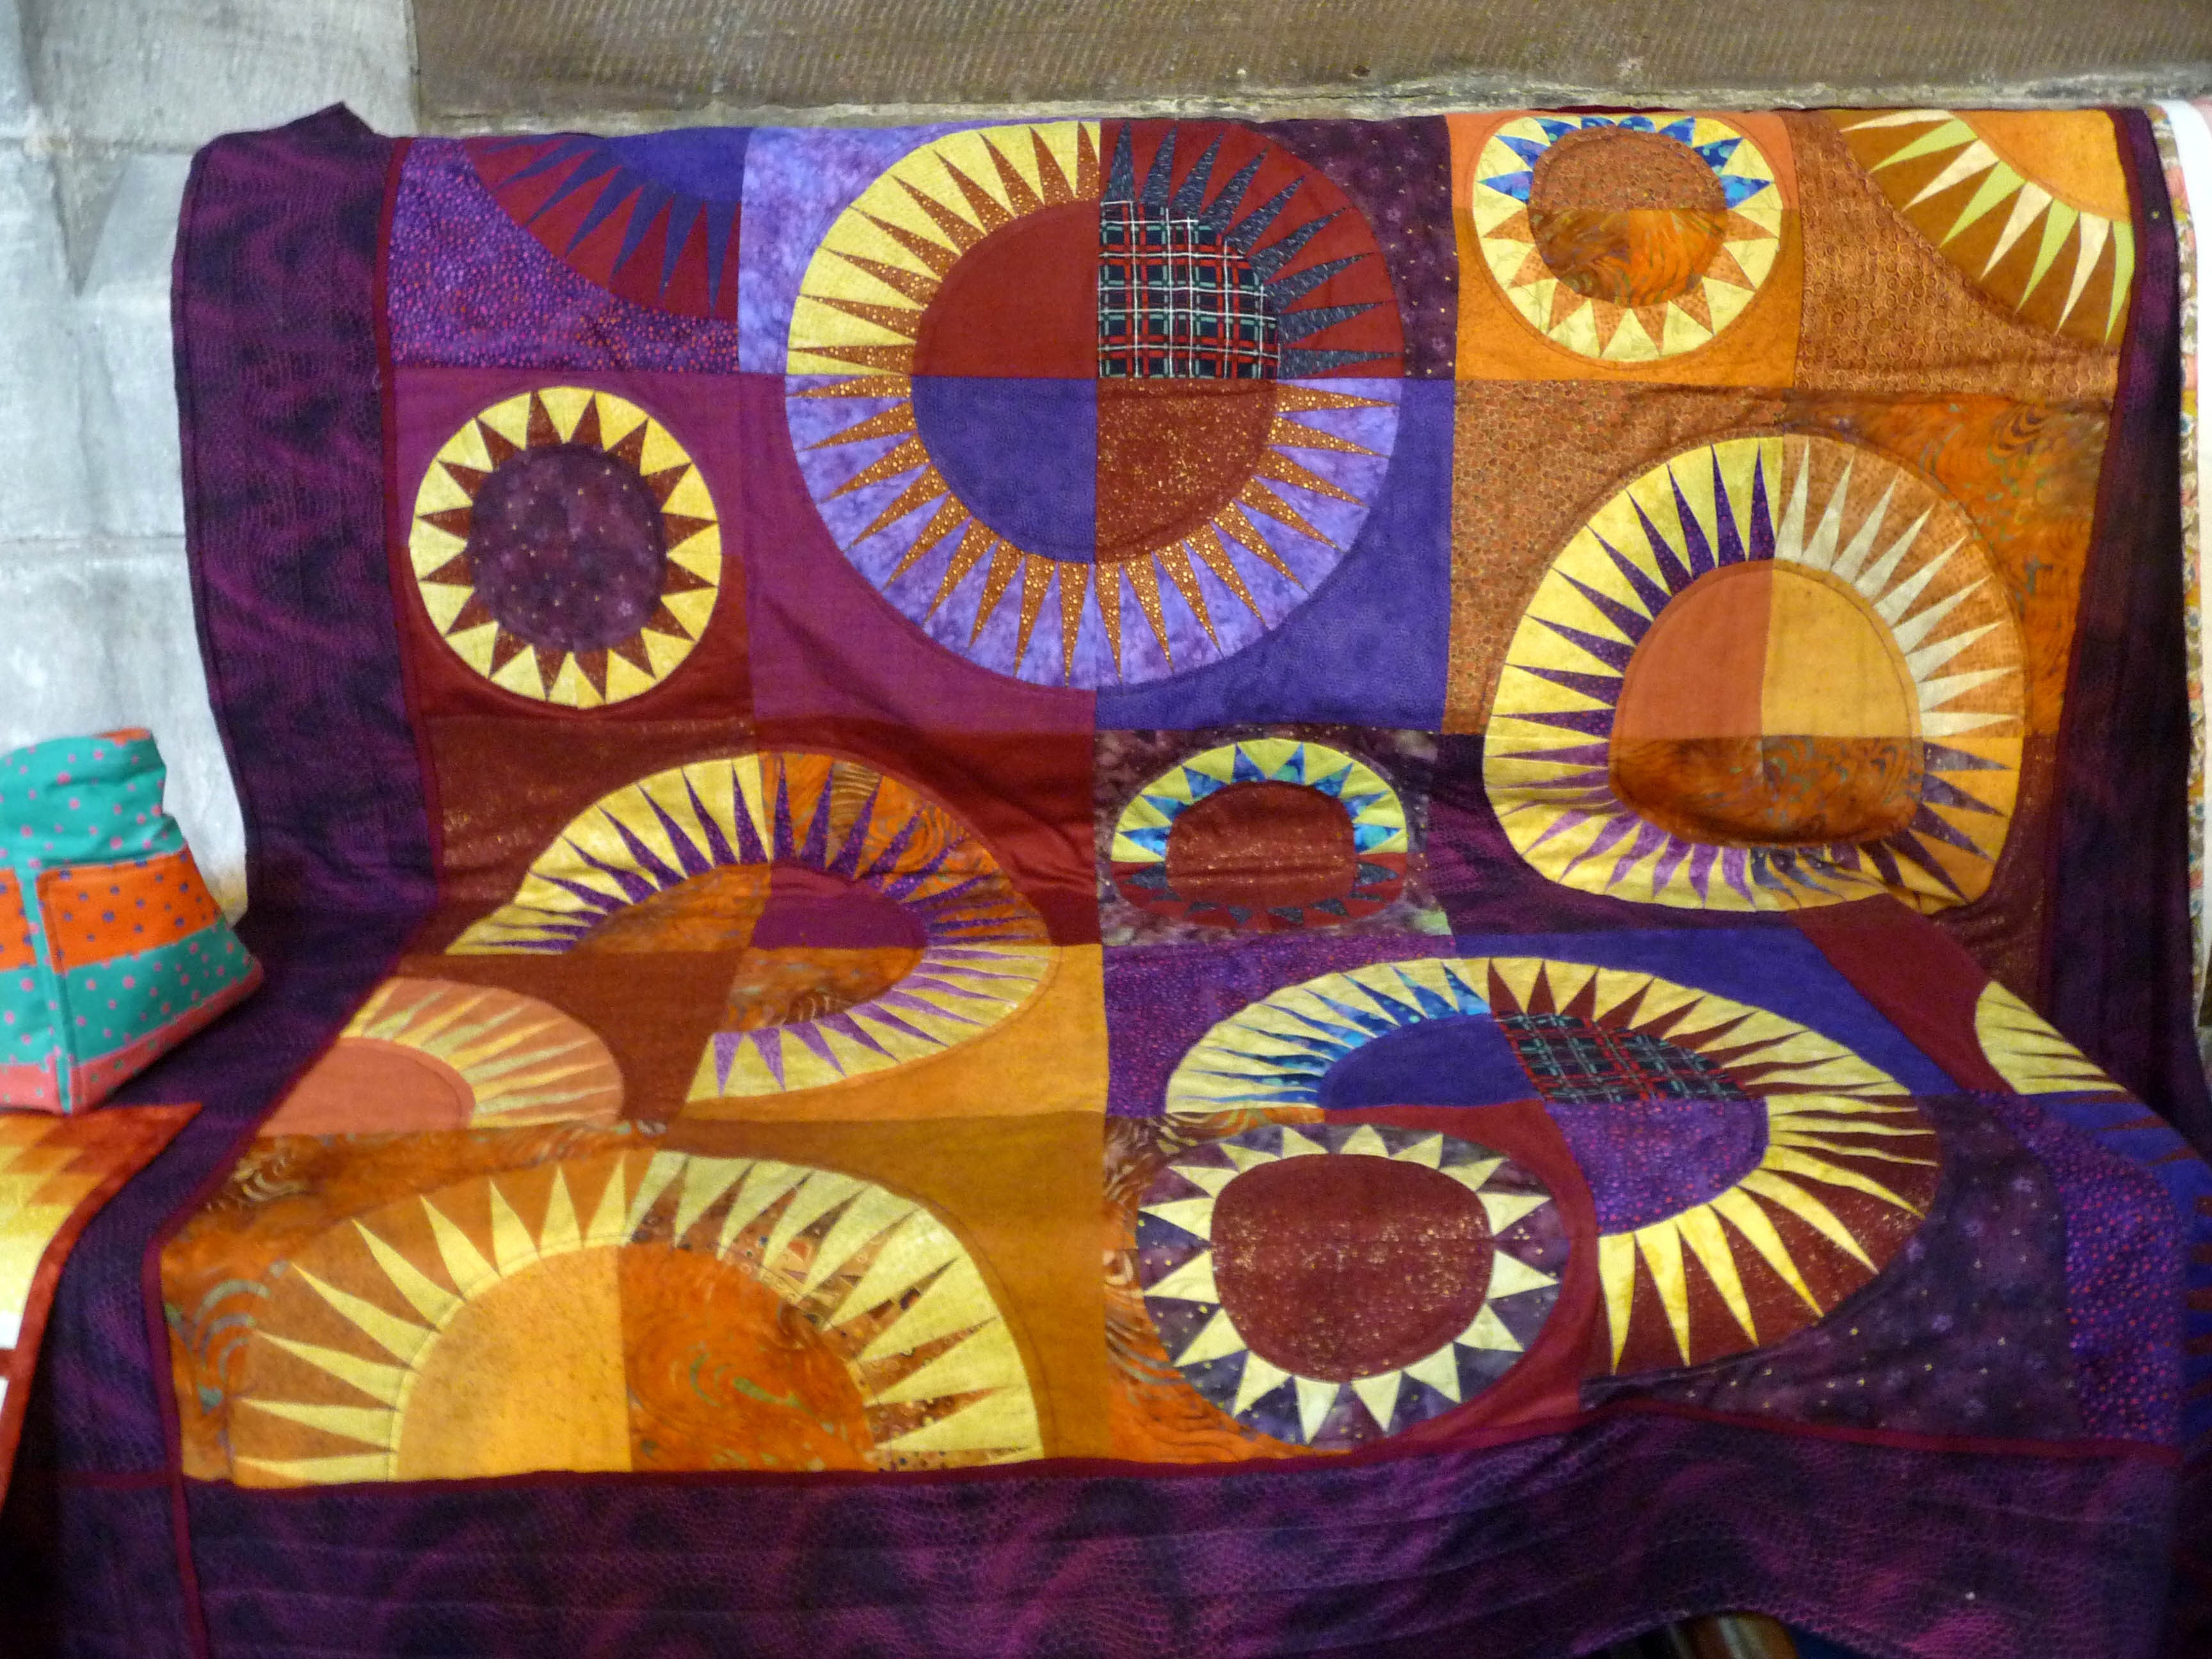 Quilt made by Sue Warn, Stitchin' Sisters Group